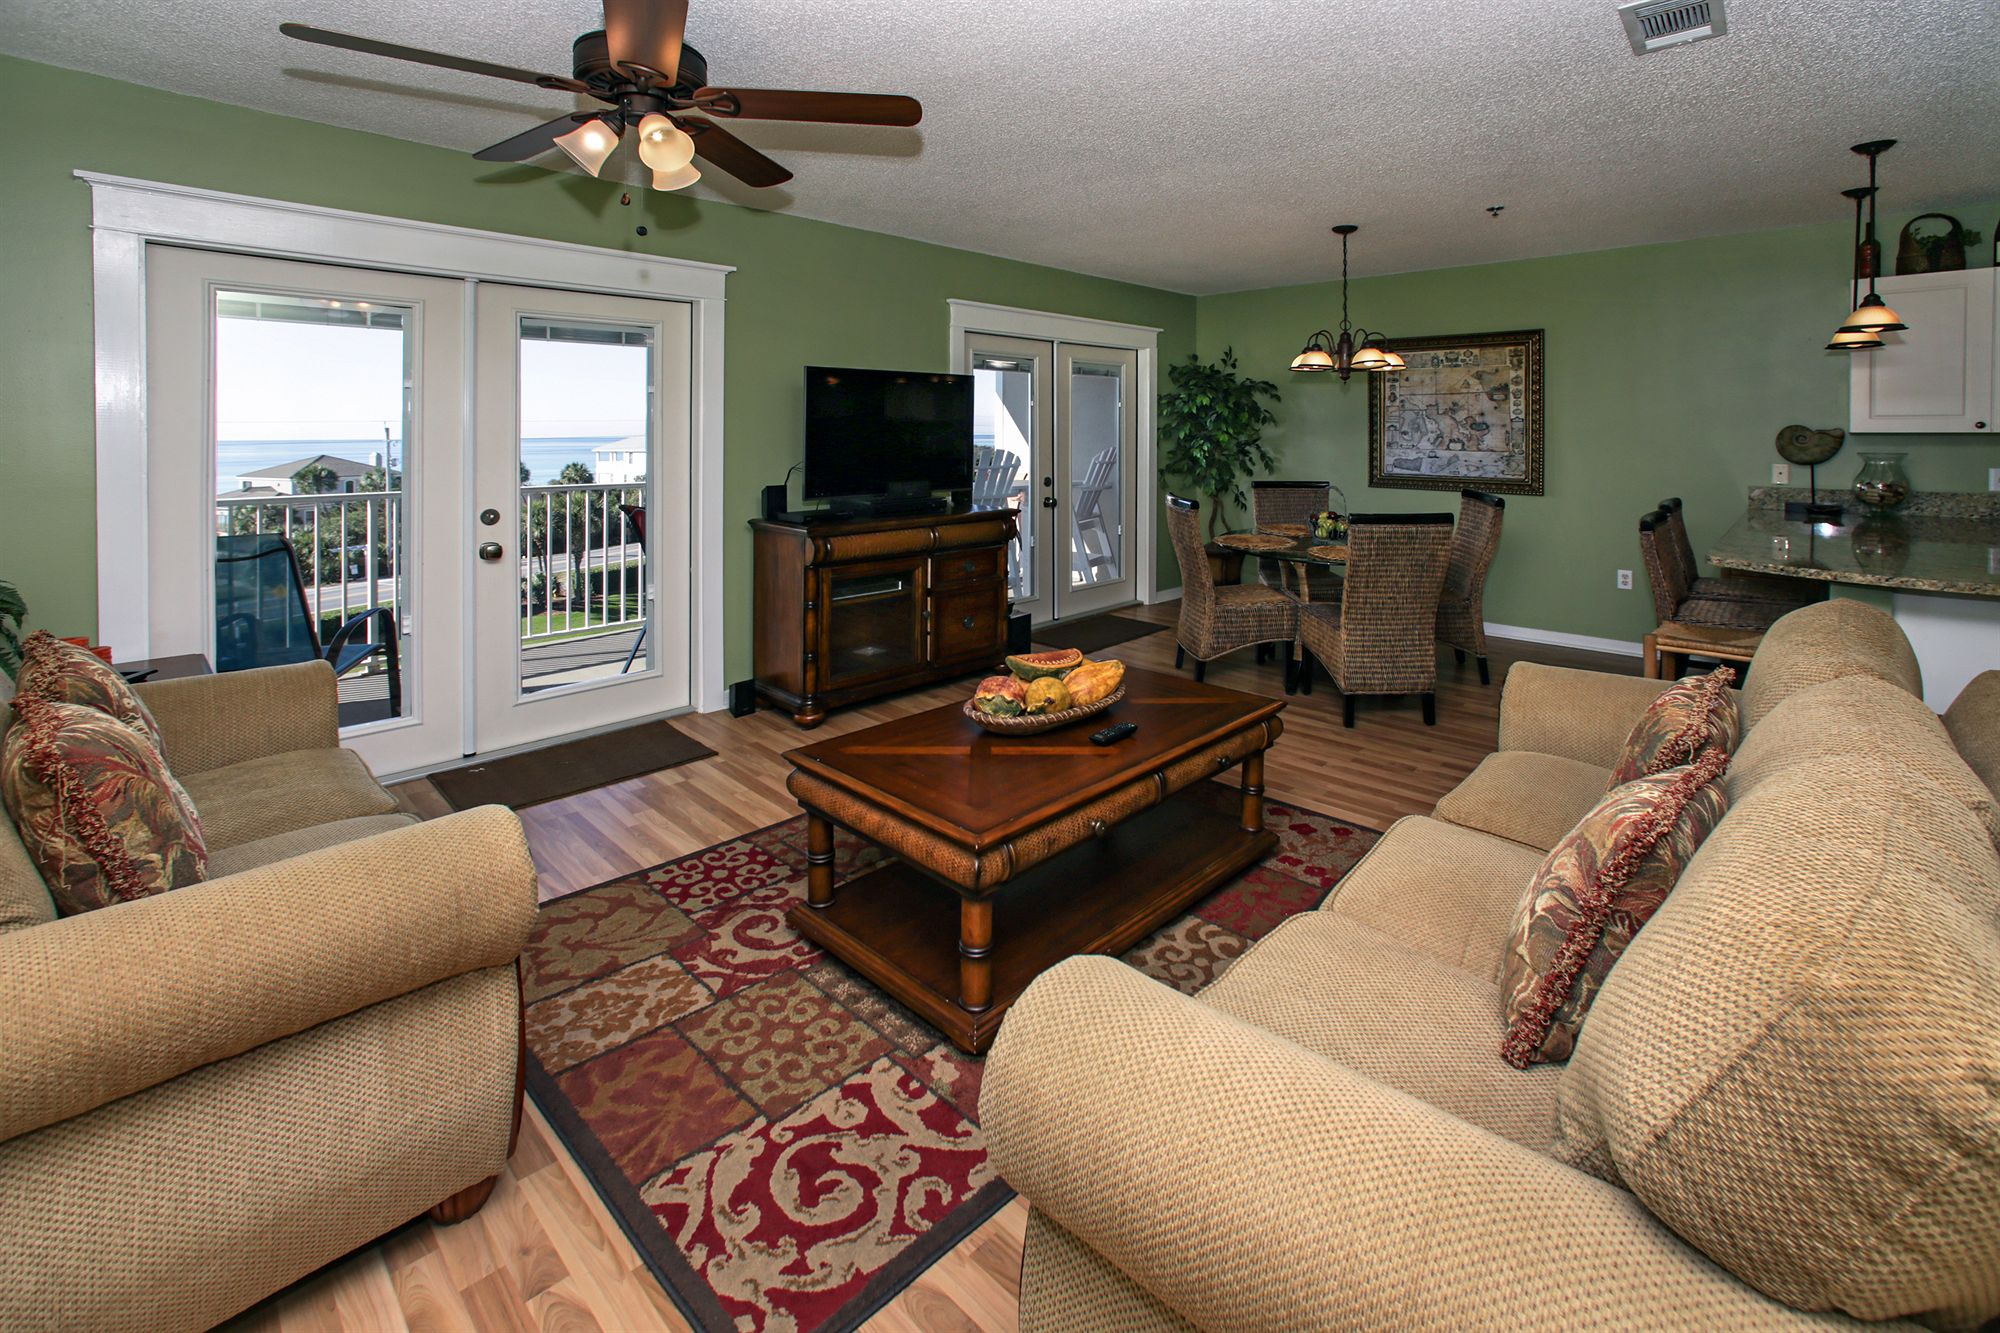 Gulf Place Community by Wyndham Vacation Rentals in Santa Rosa Beach, FL